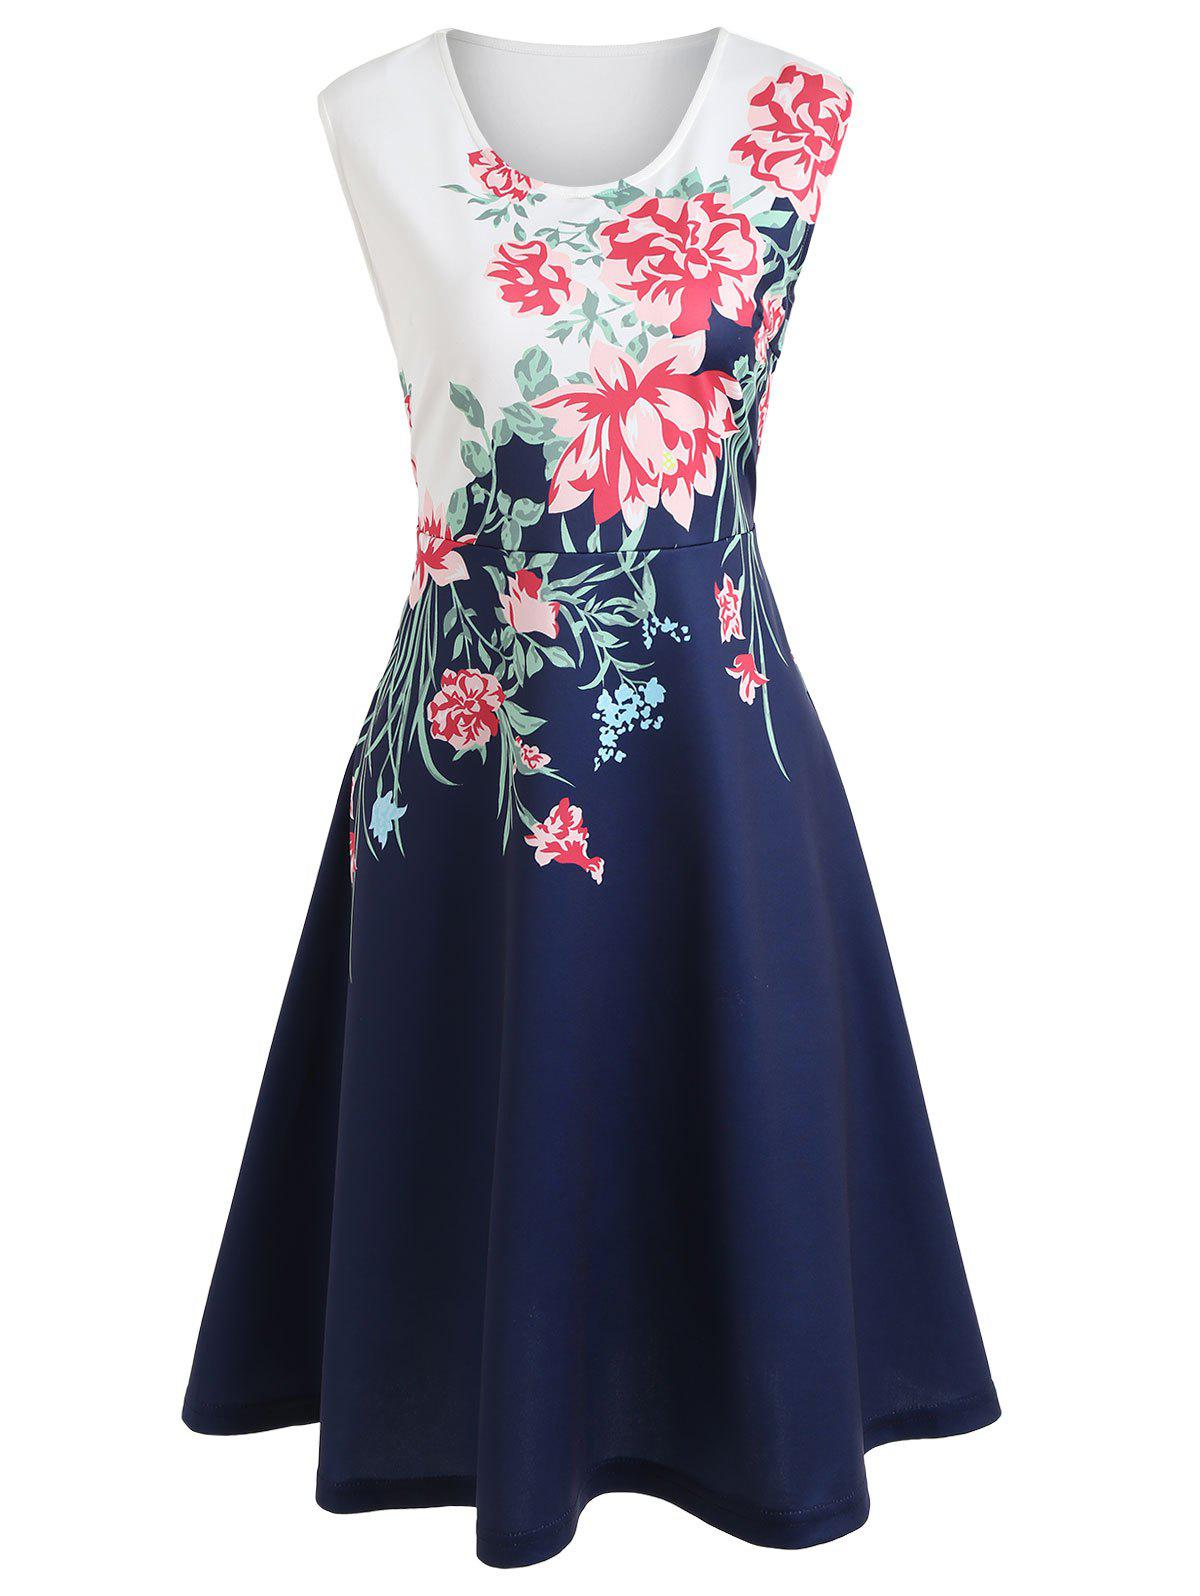 Best Floral Print Sleeveless Midi Dress